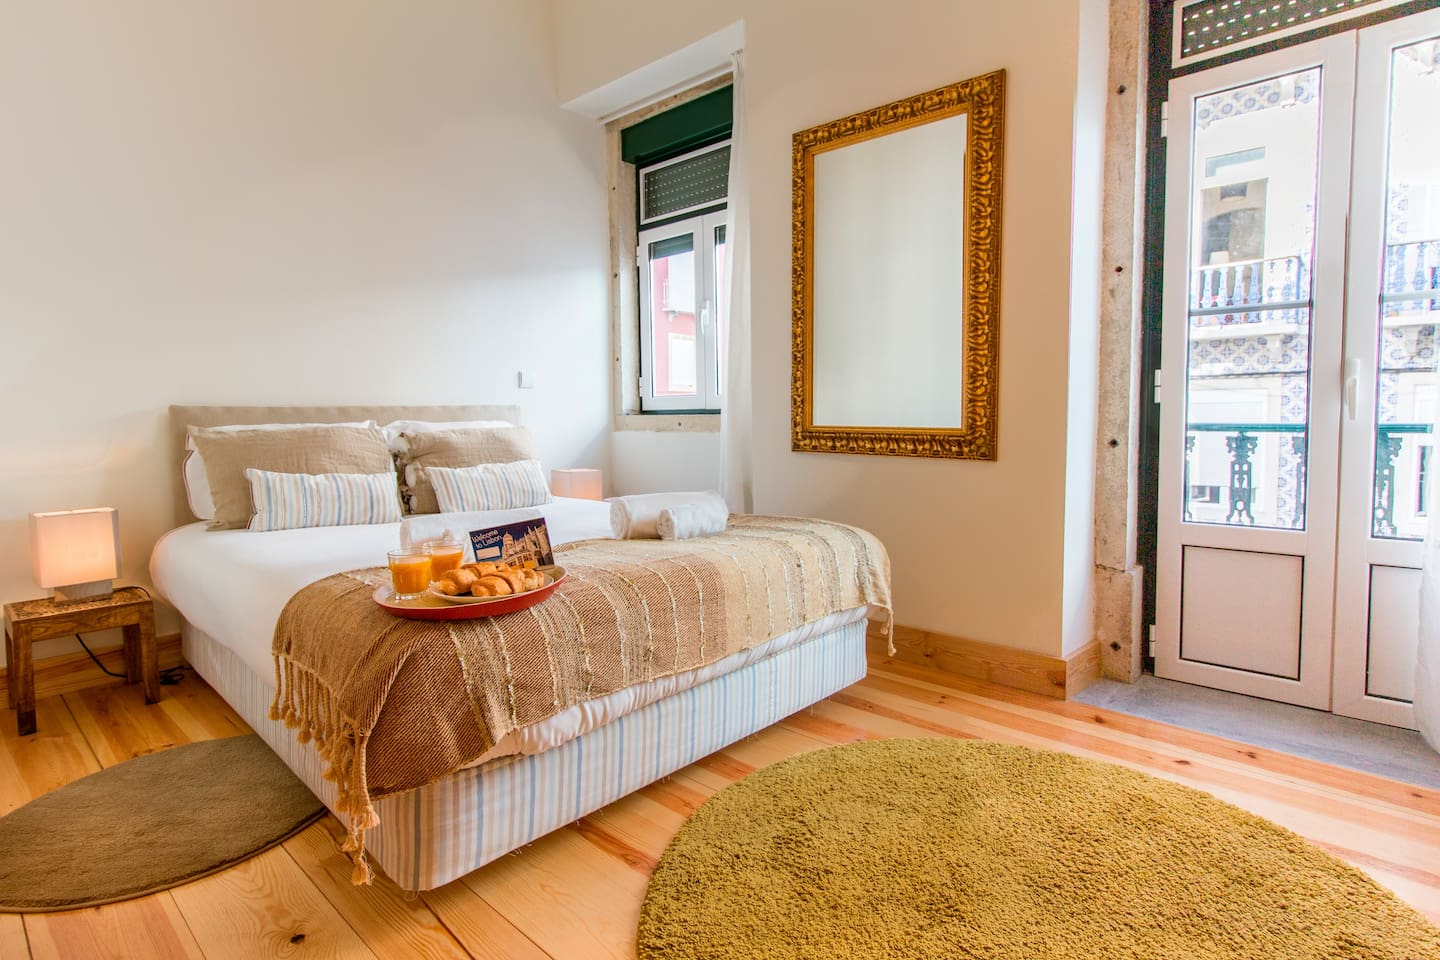 Bedroom with Comfortable King-Size Bed and City View